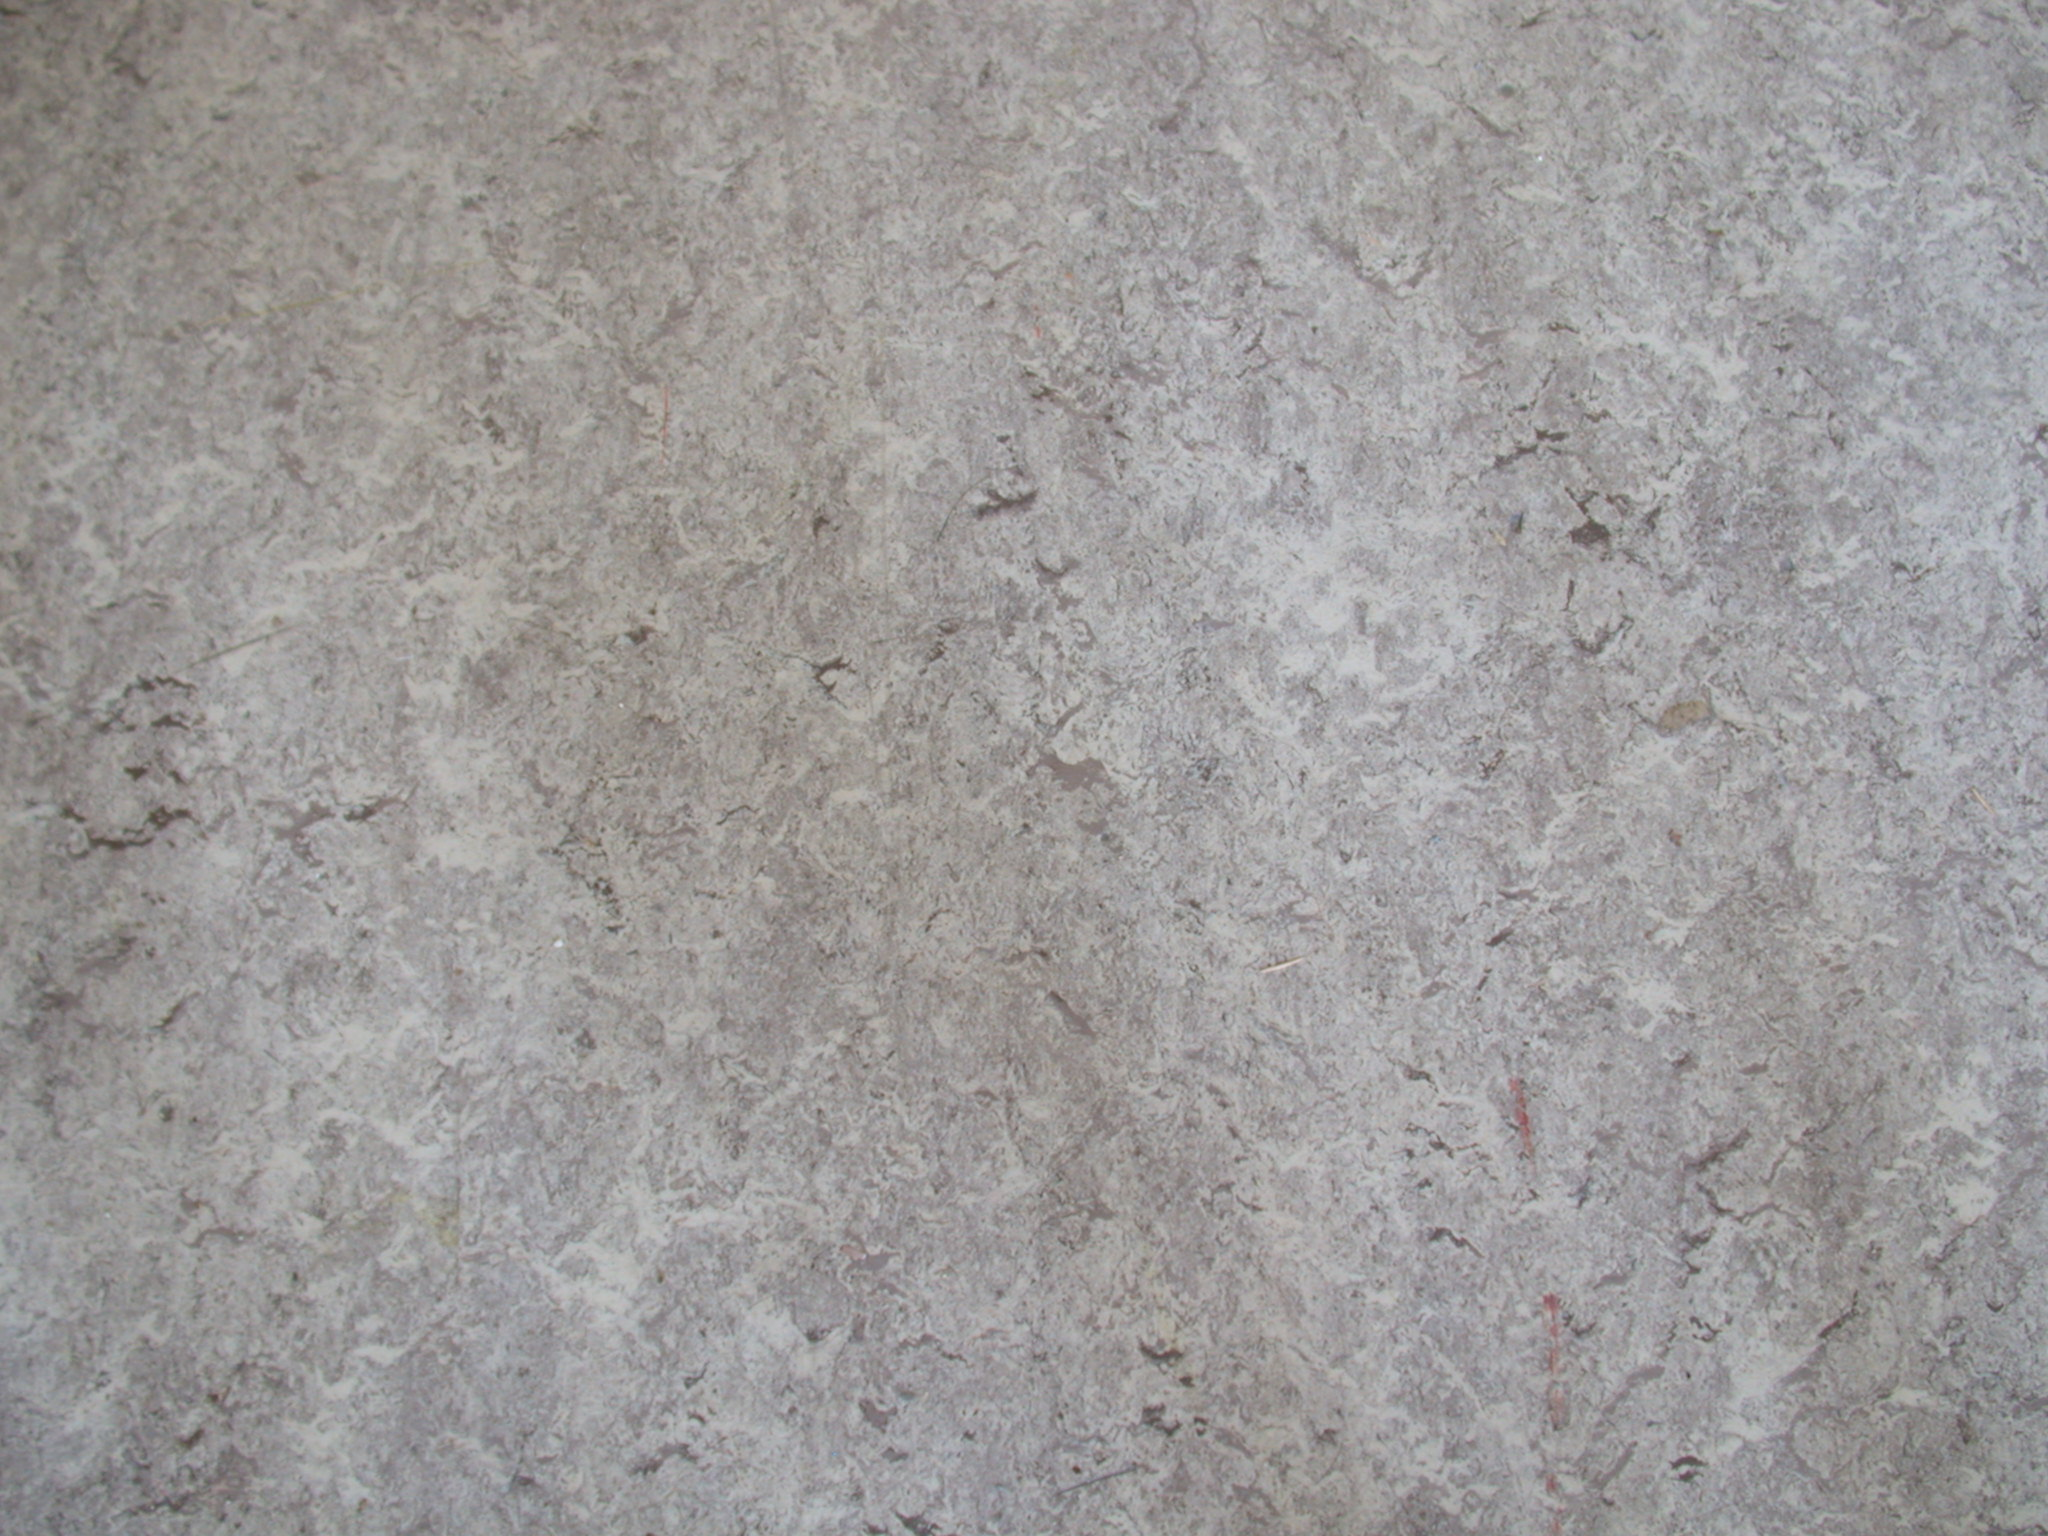 imageafter photo linoleum texture marble grounds